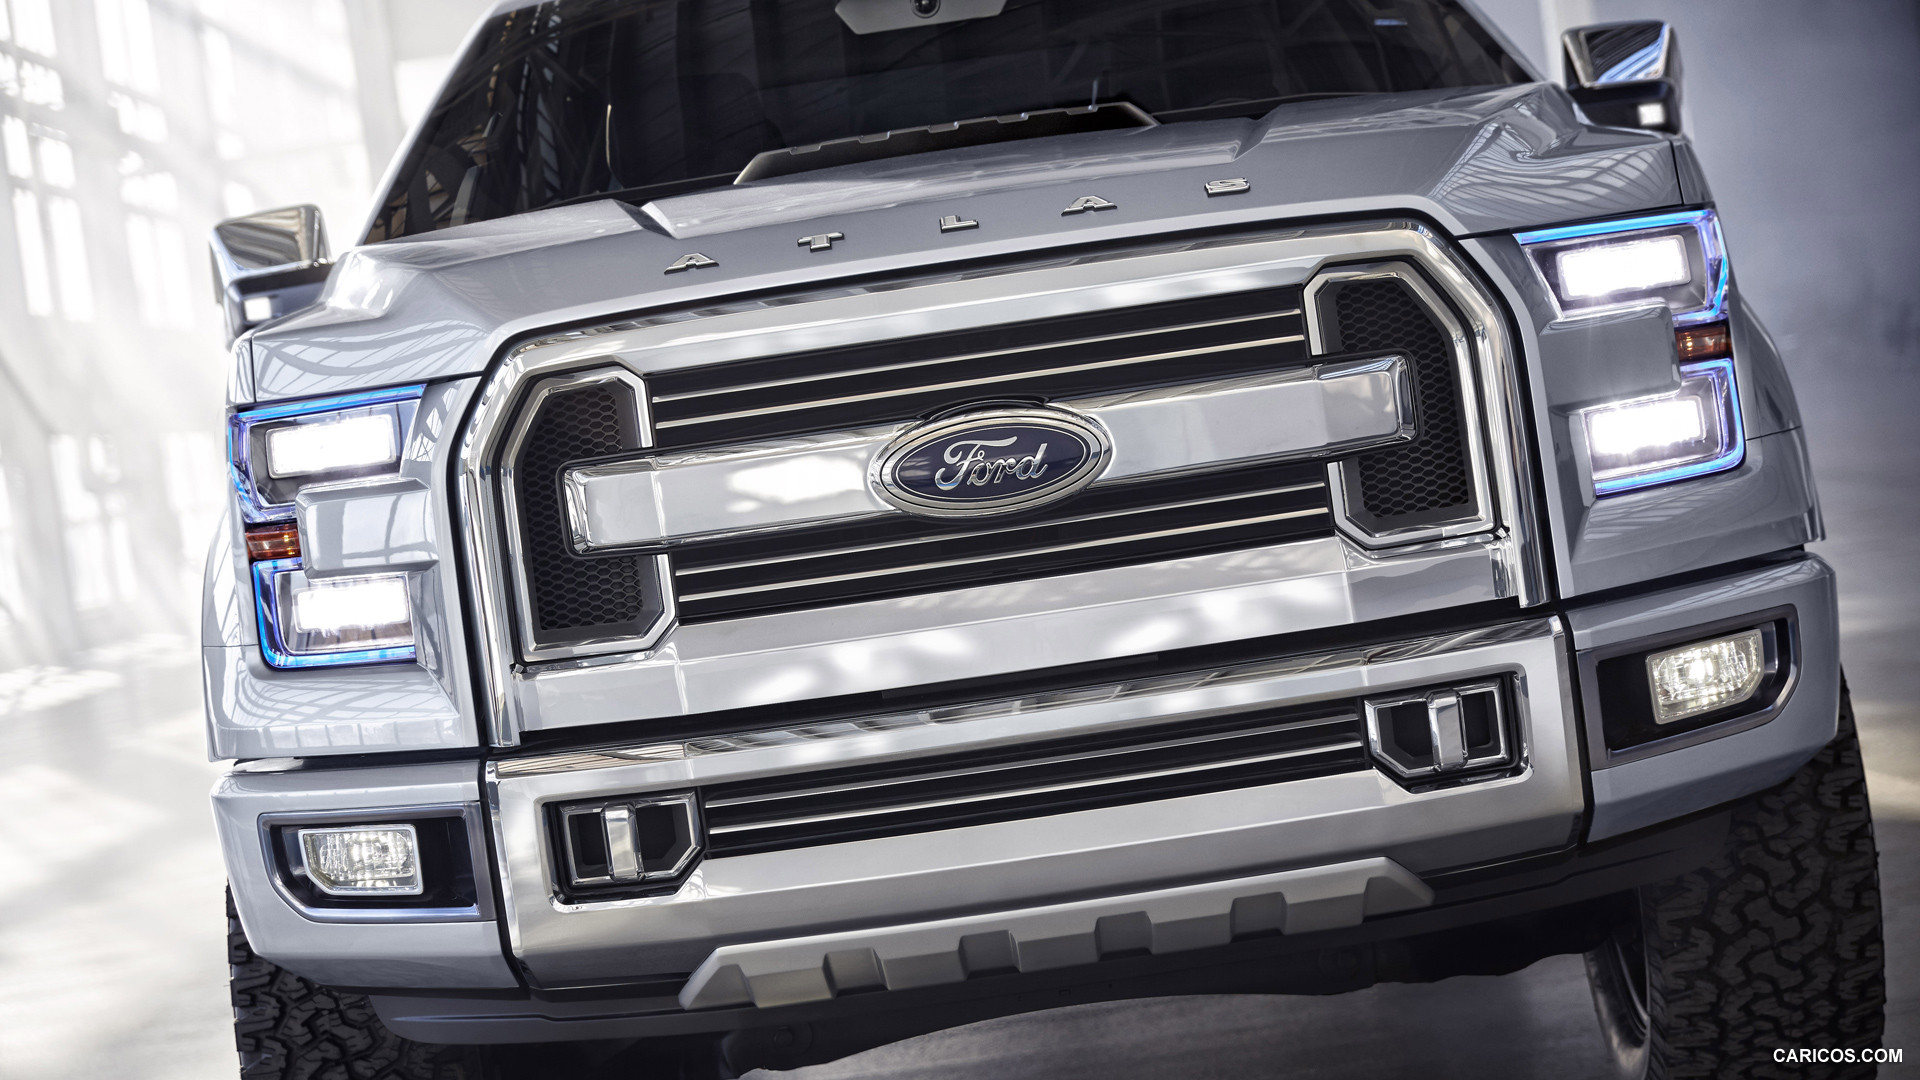 Ford Atlas photo 121622